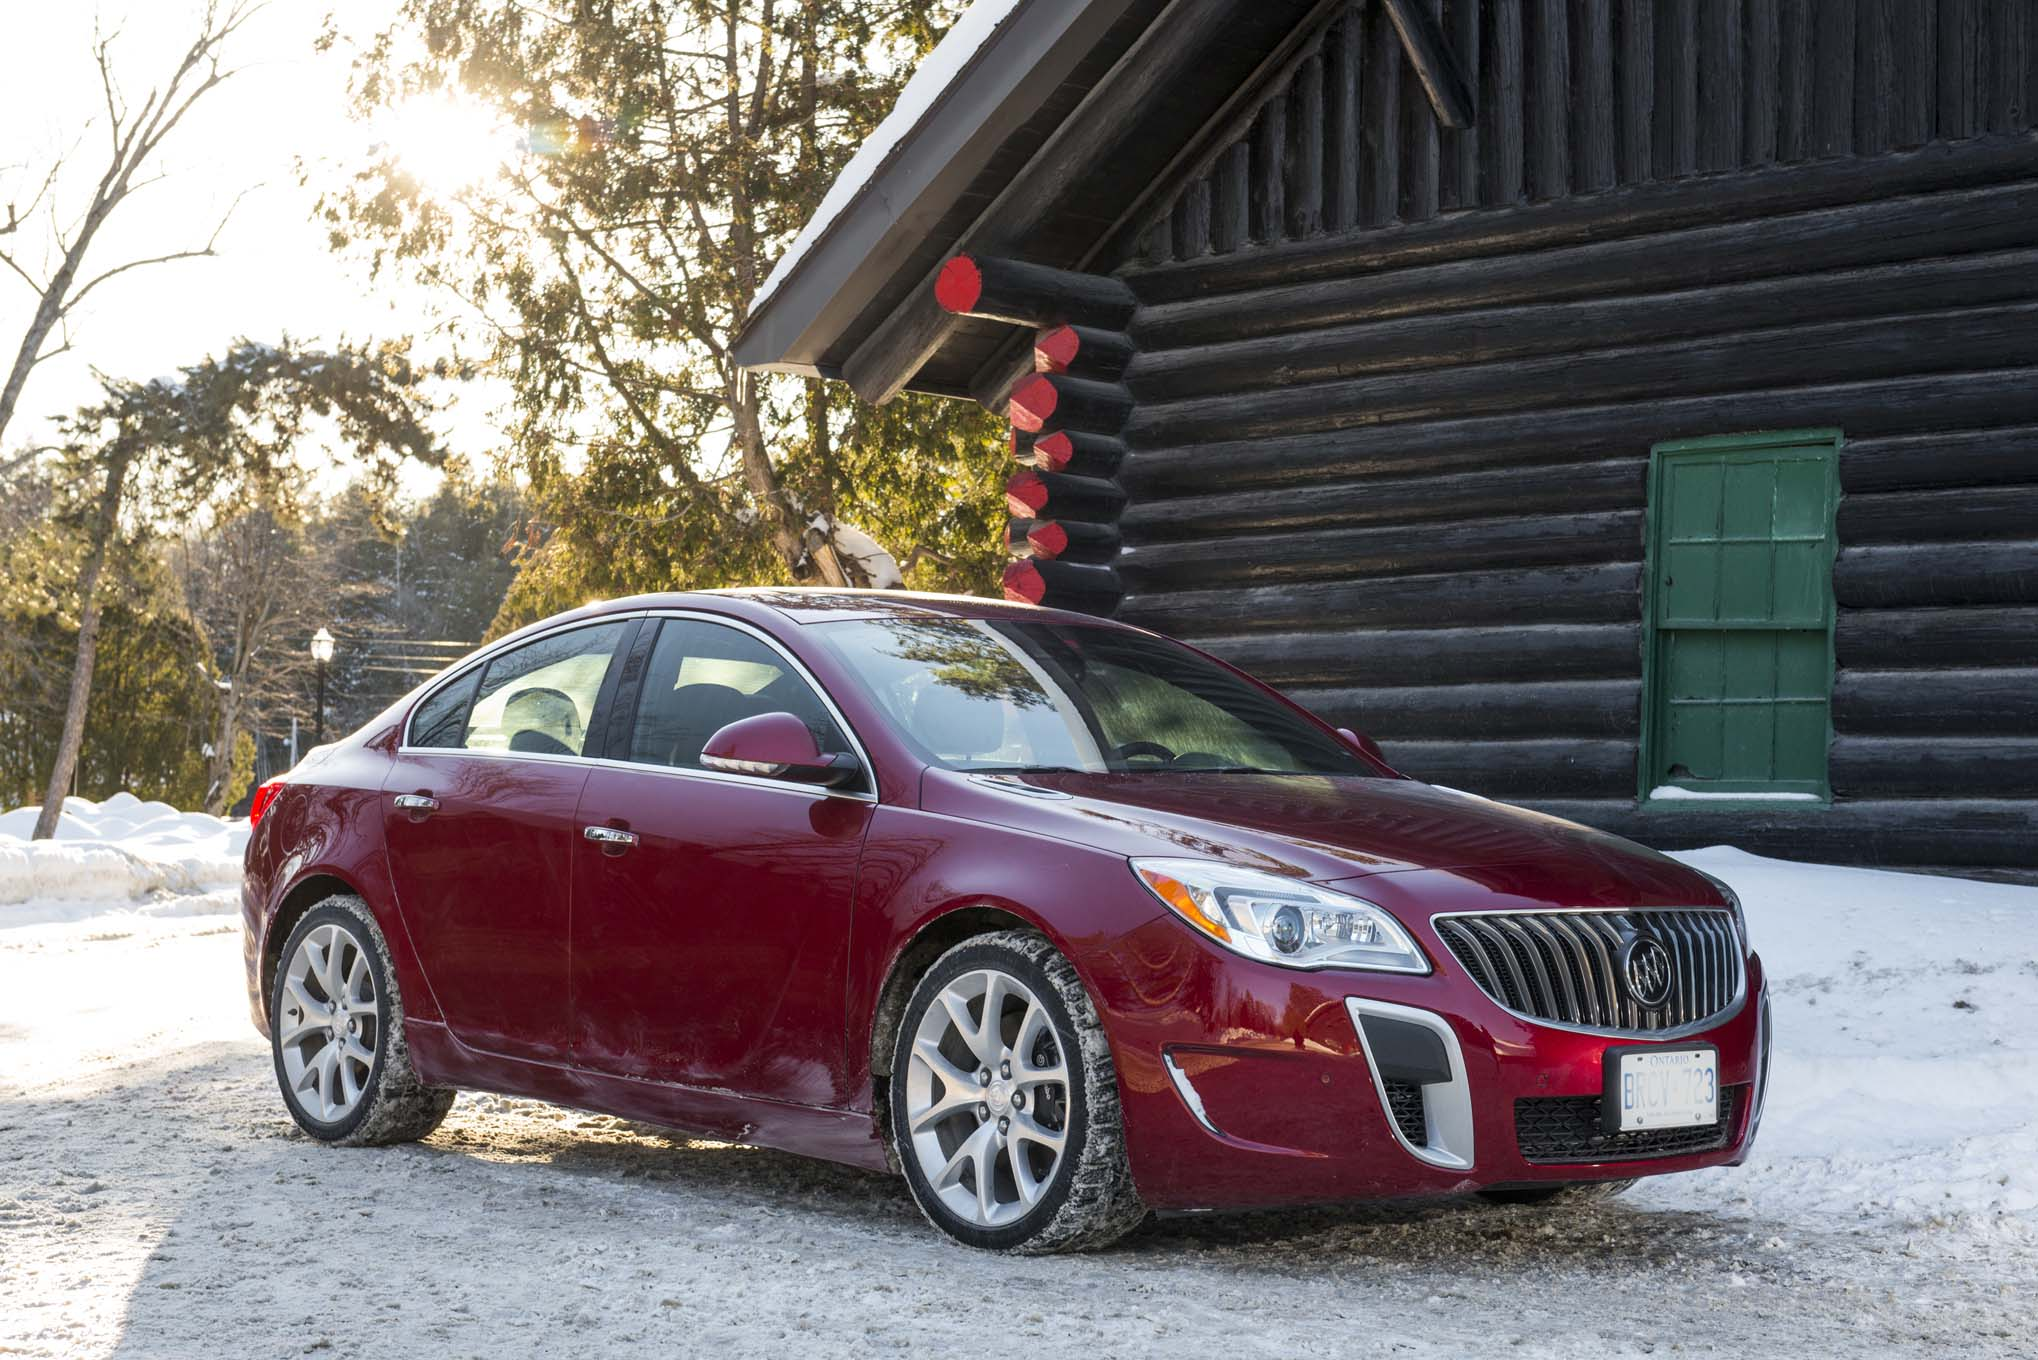 specs are driver wagon be and sportback photos buick hot the going used regal to s sedan news photo reviews car original price